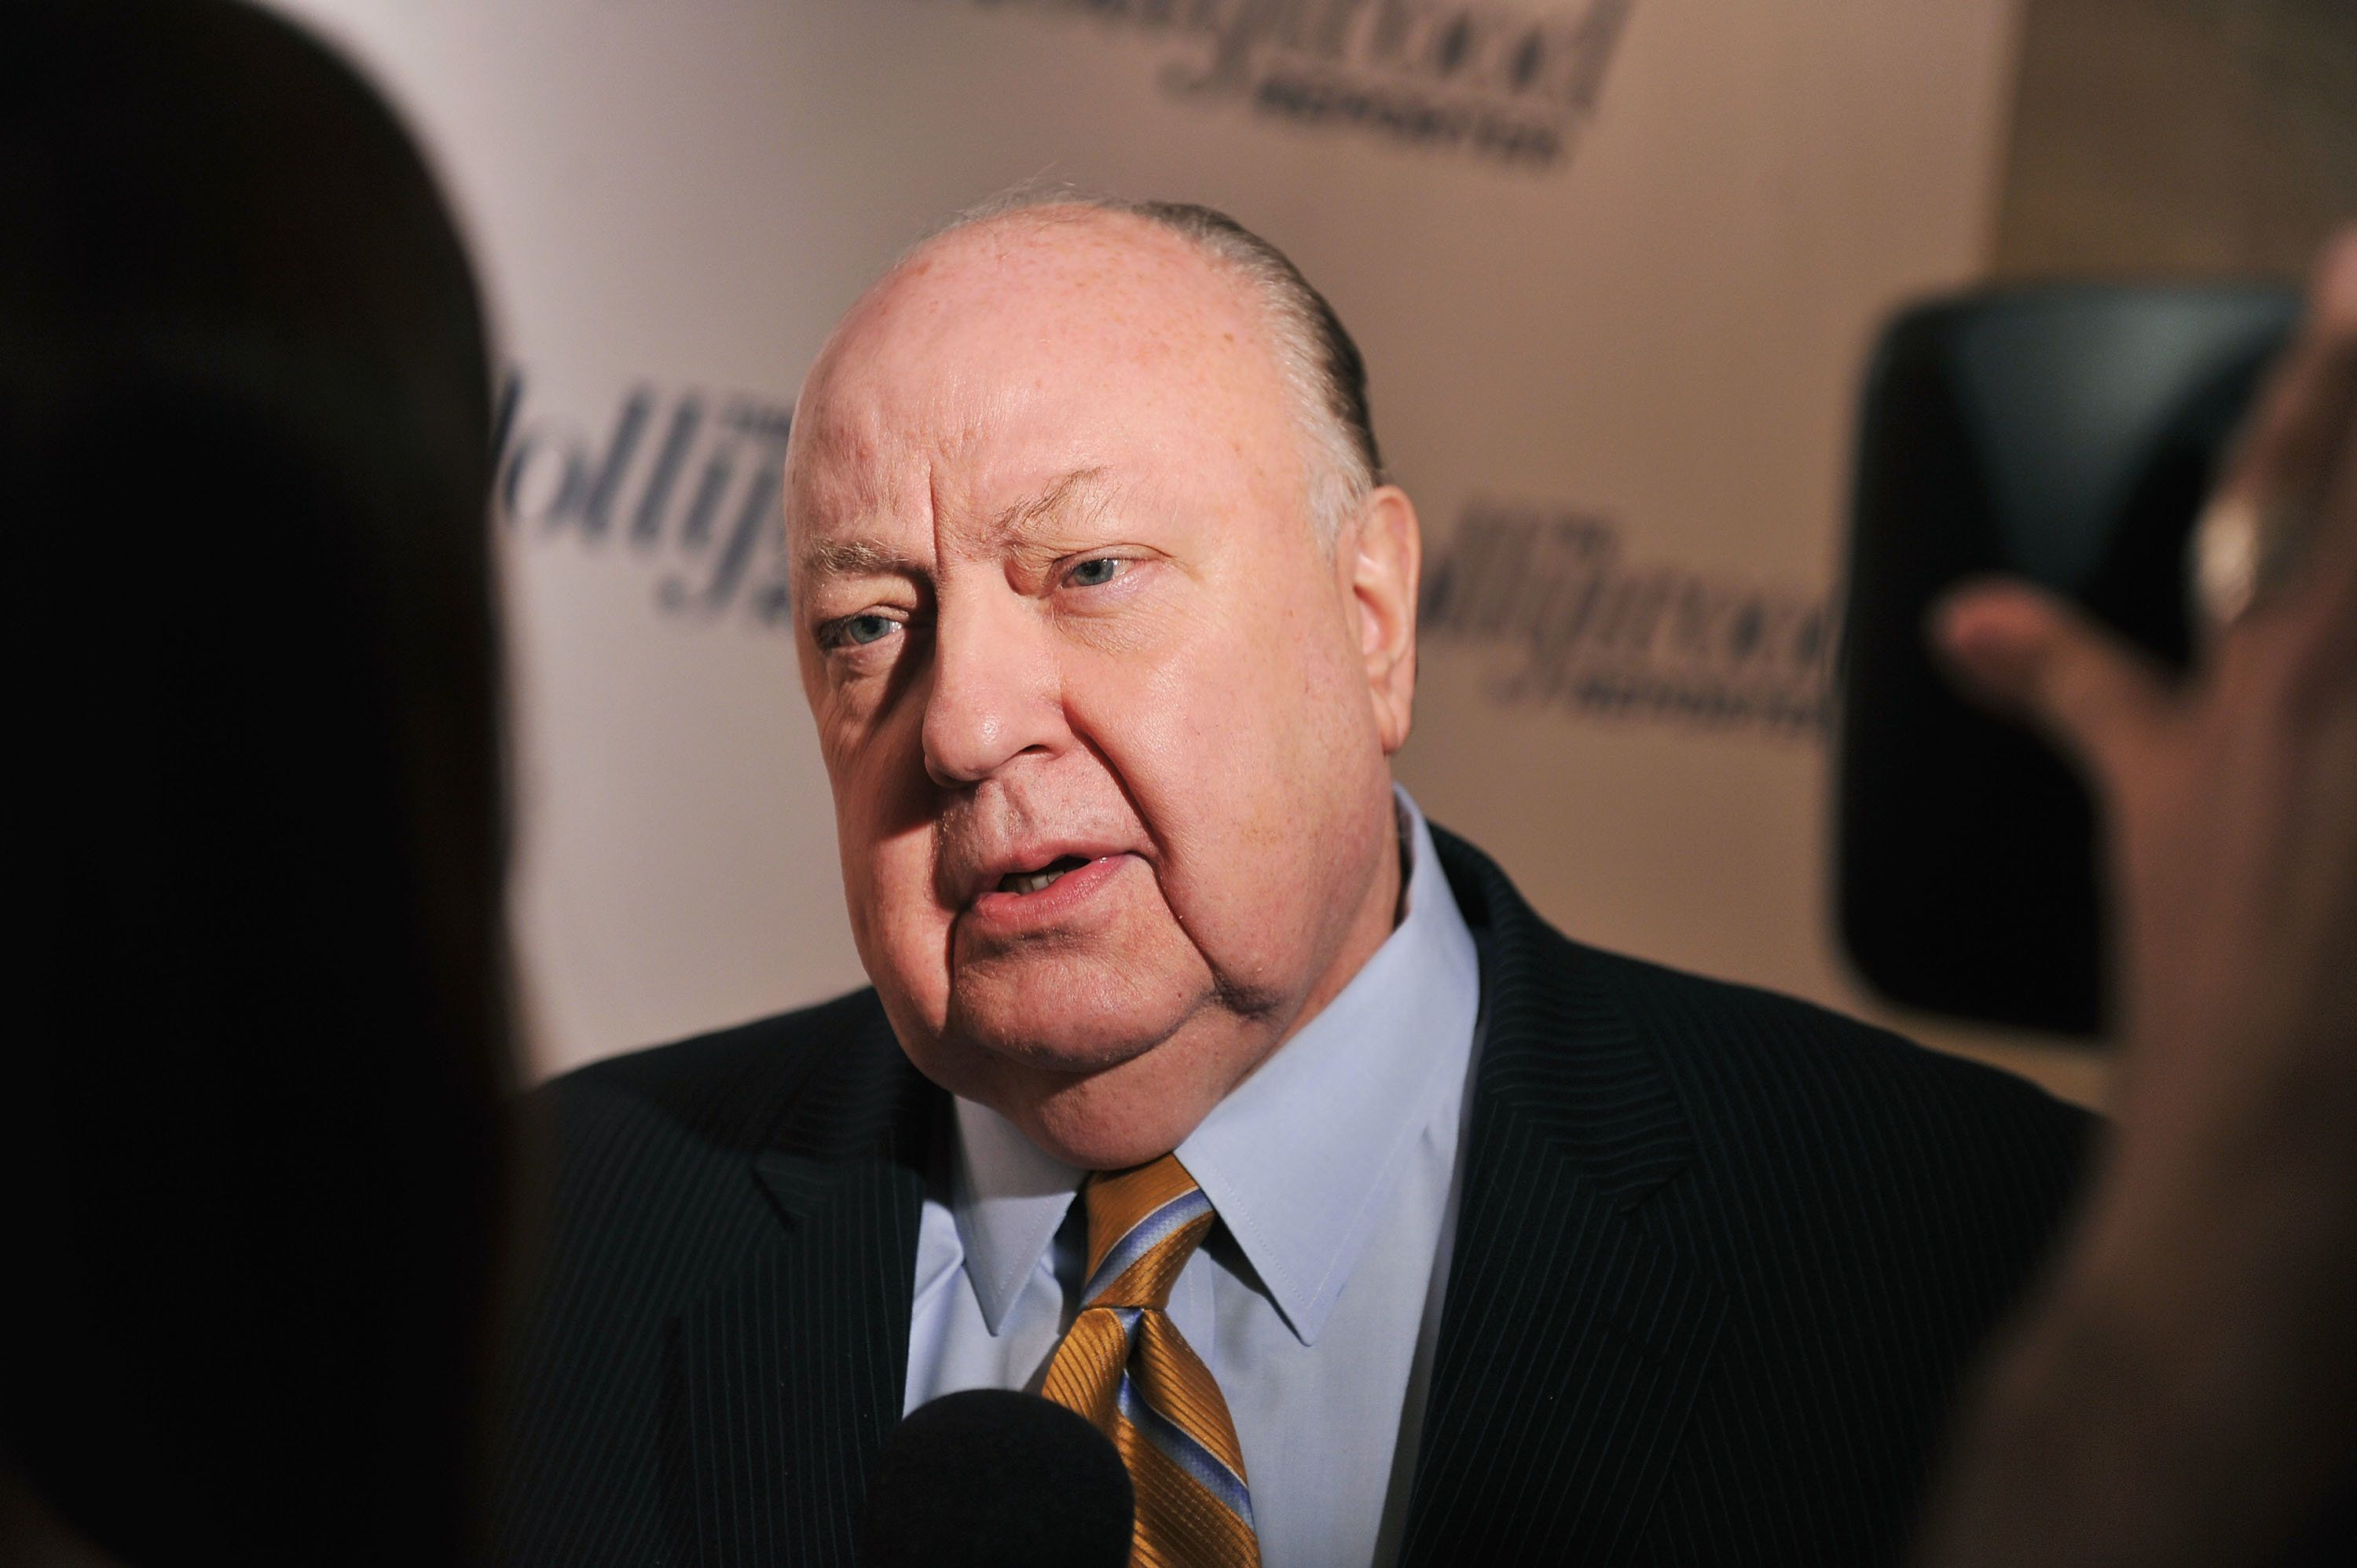 Roger Ailes at an event in